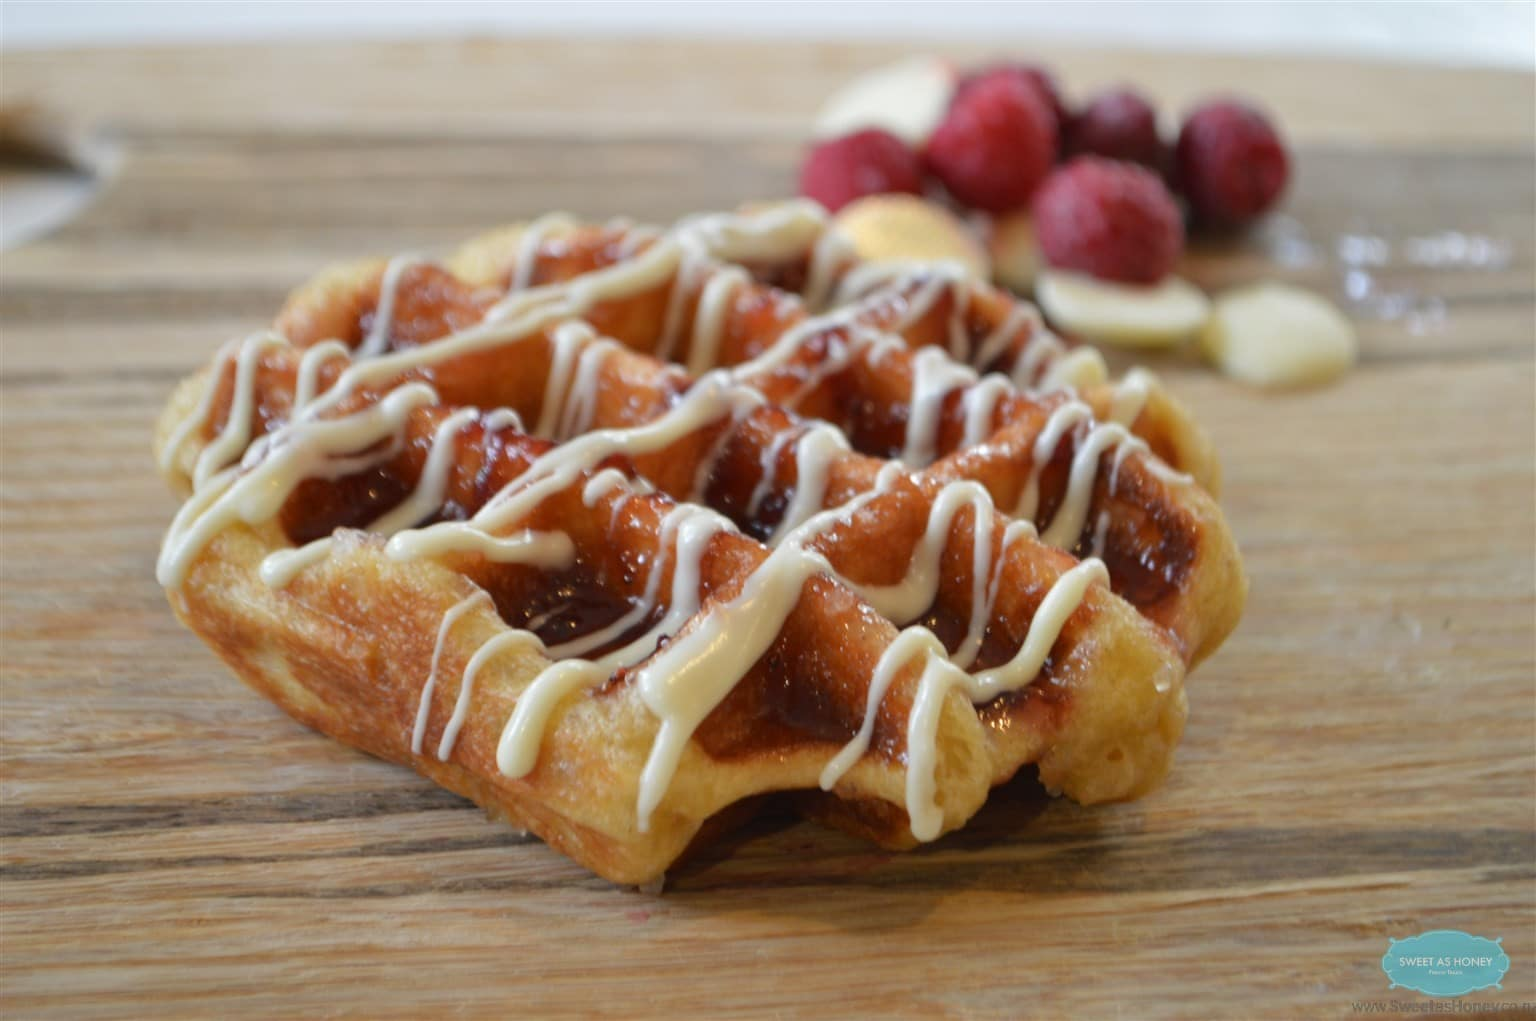 Best Waffle Maker Recipes: From Sweet to Savory [Marilyn Haugen, Jennifer MacKenzie] on allxpreswts.ml *FREE* shipping on qualifying offers. Now home cooks can enjoy scrumptious restaurant-quality sweet and savory waffles. To say that waffles are enjoying a moment is an understatement. The Waffle House sells waffles per minute -